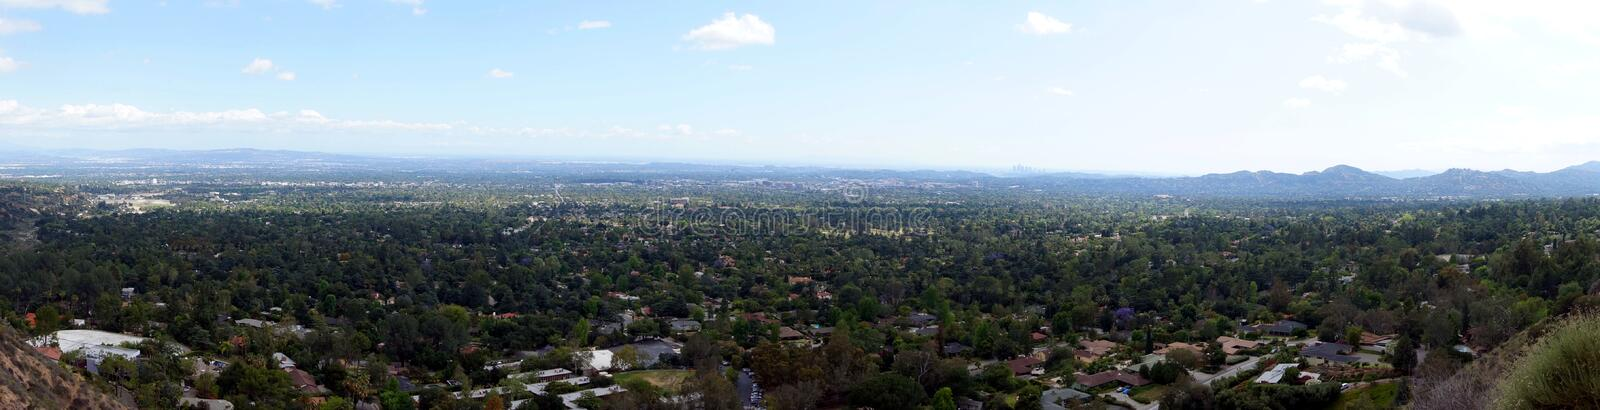 Panoramic view of Los Angeles from Altadena mountains. Panoramic view. Los Angeles, Altadena, Pasadena. Downtown Los Angeles is hardly visible through the fog stock photos